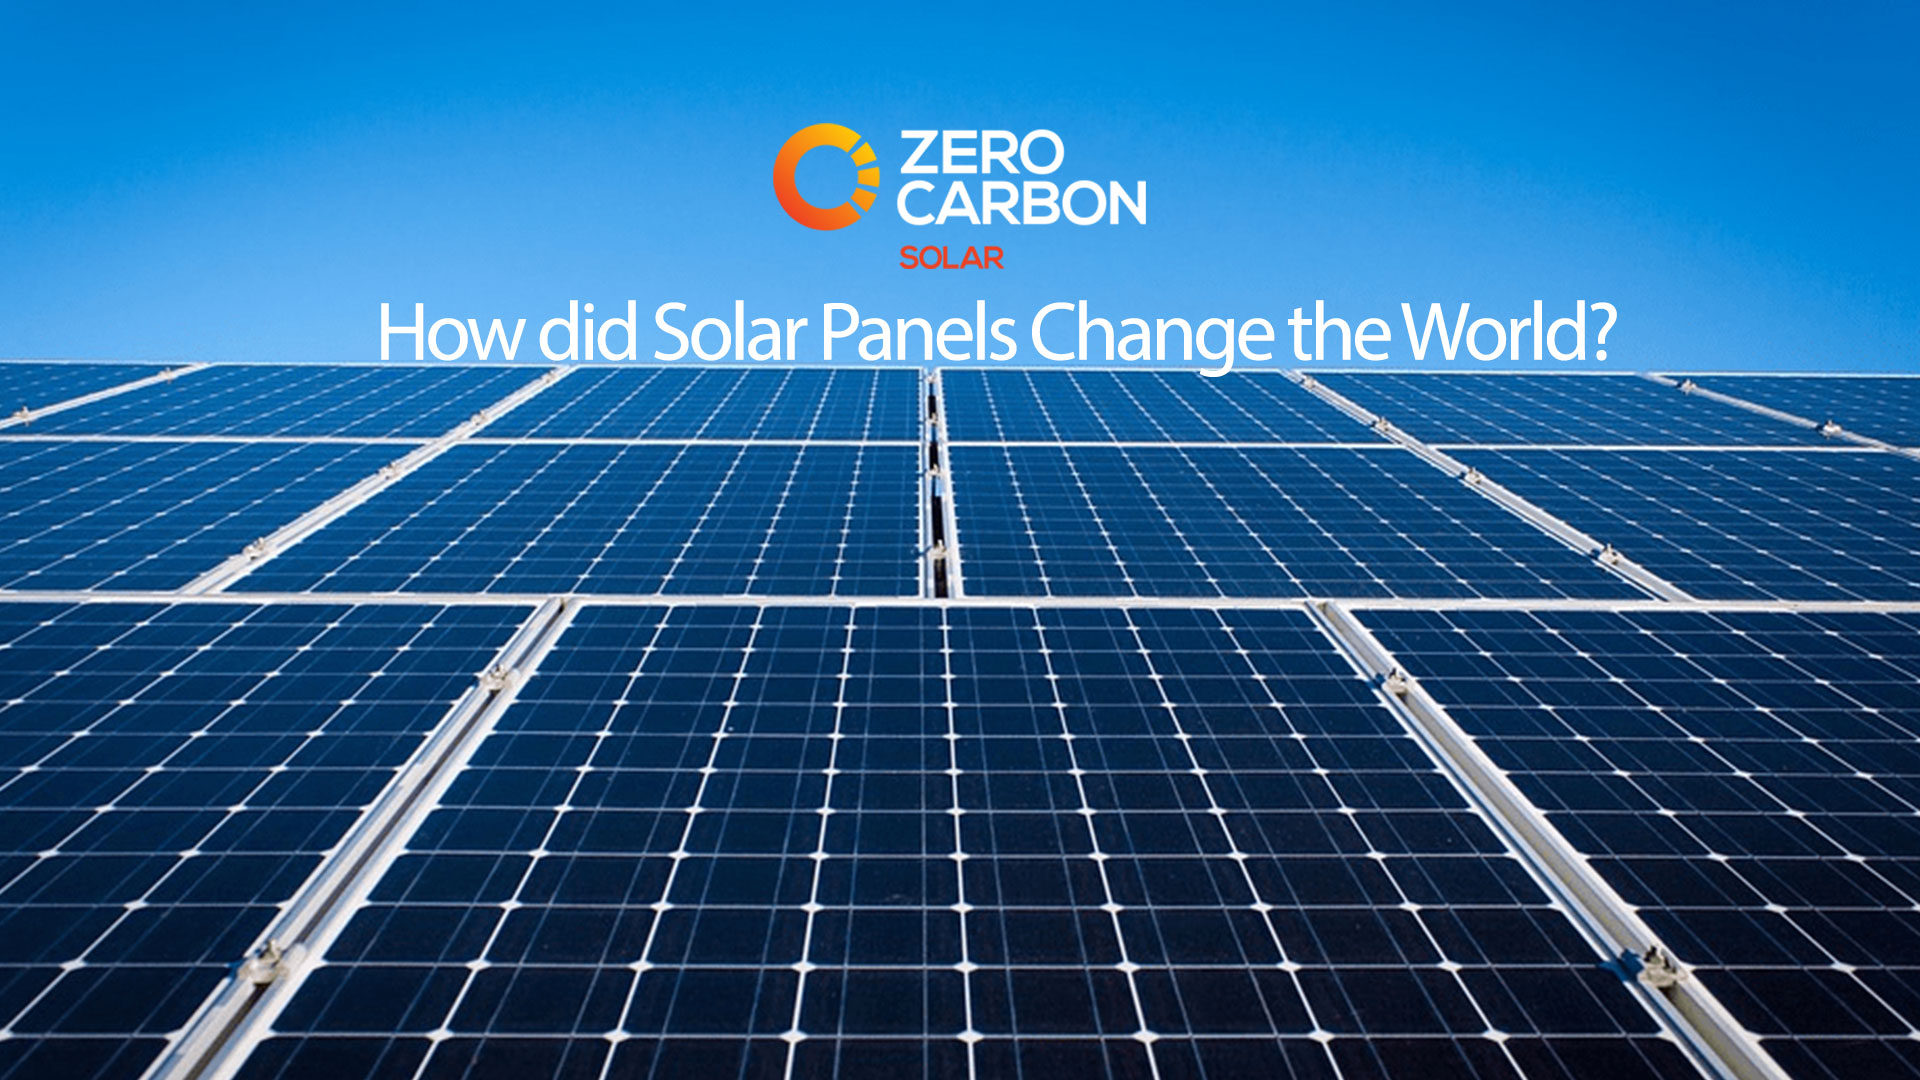 How did solar panels change the world?